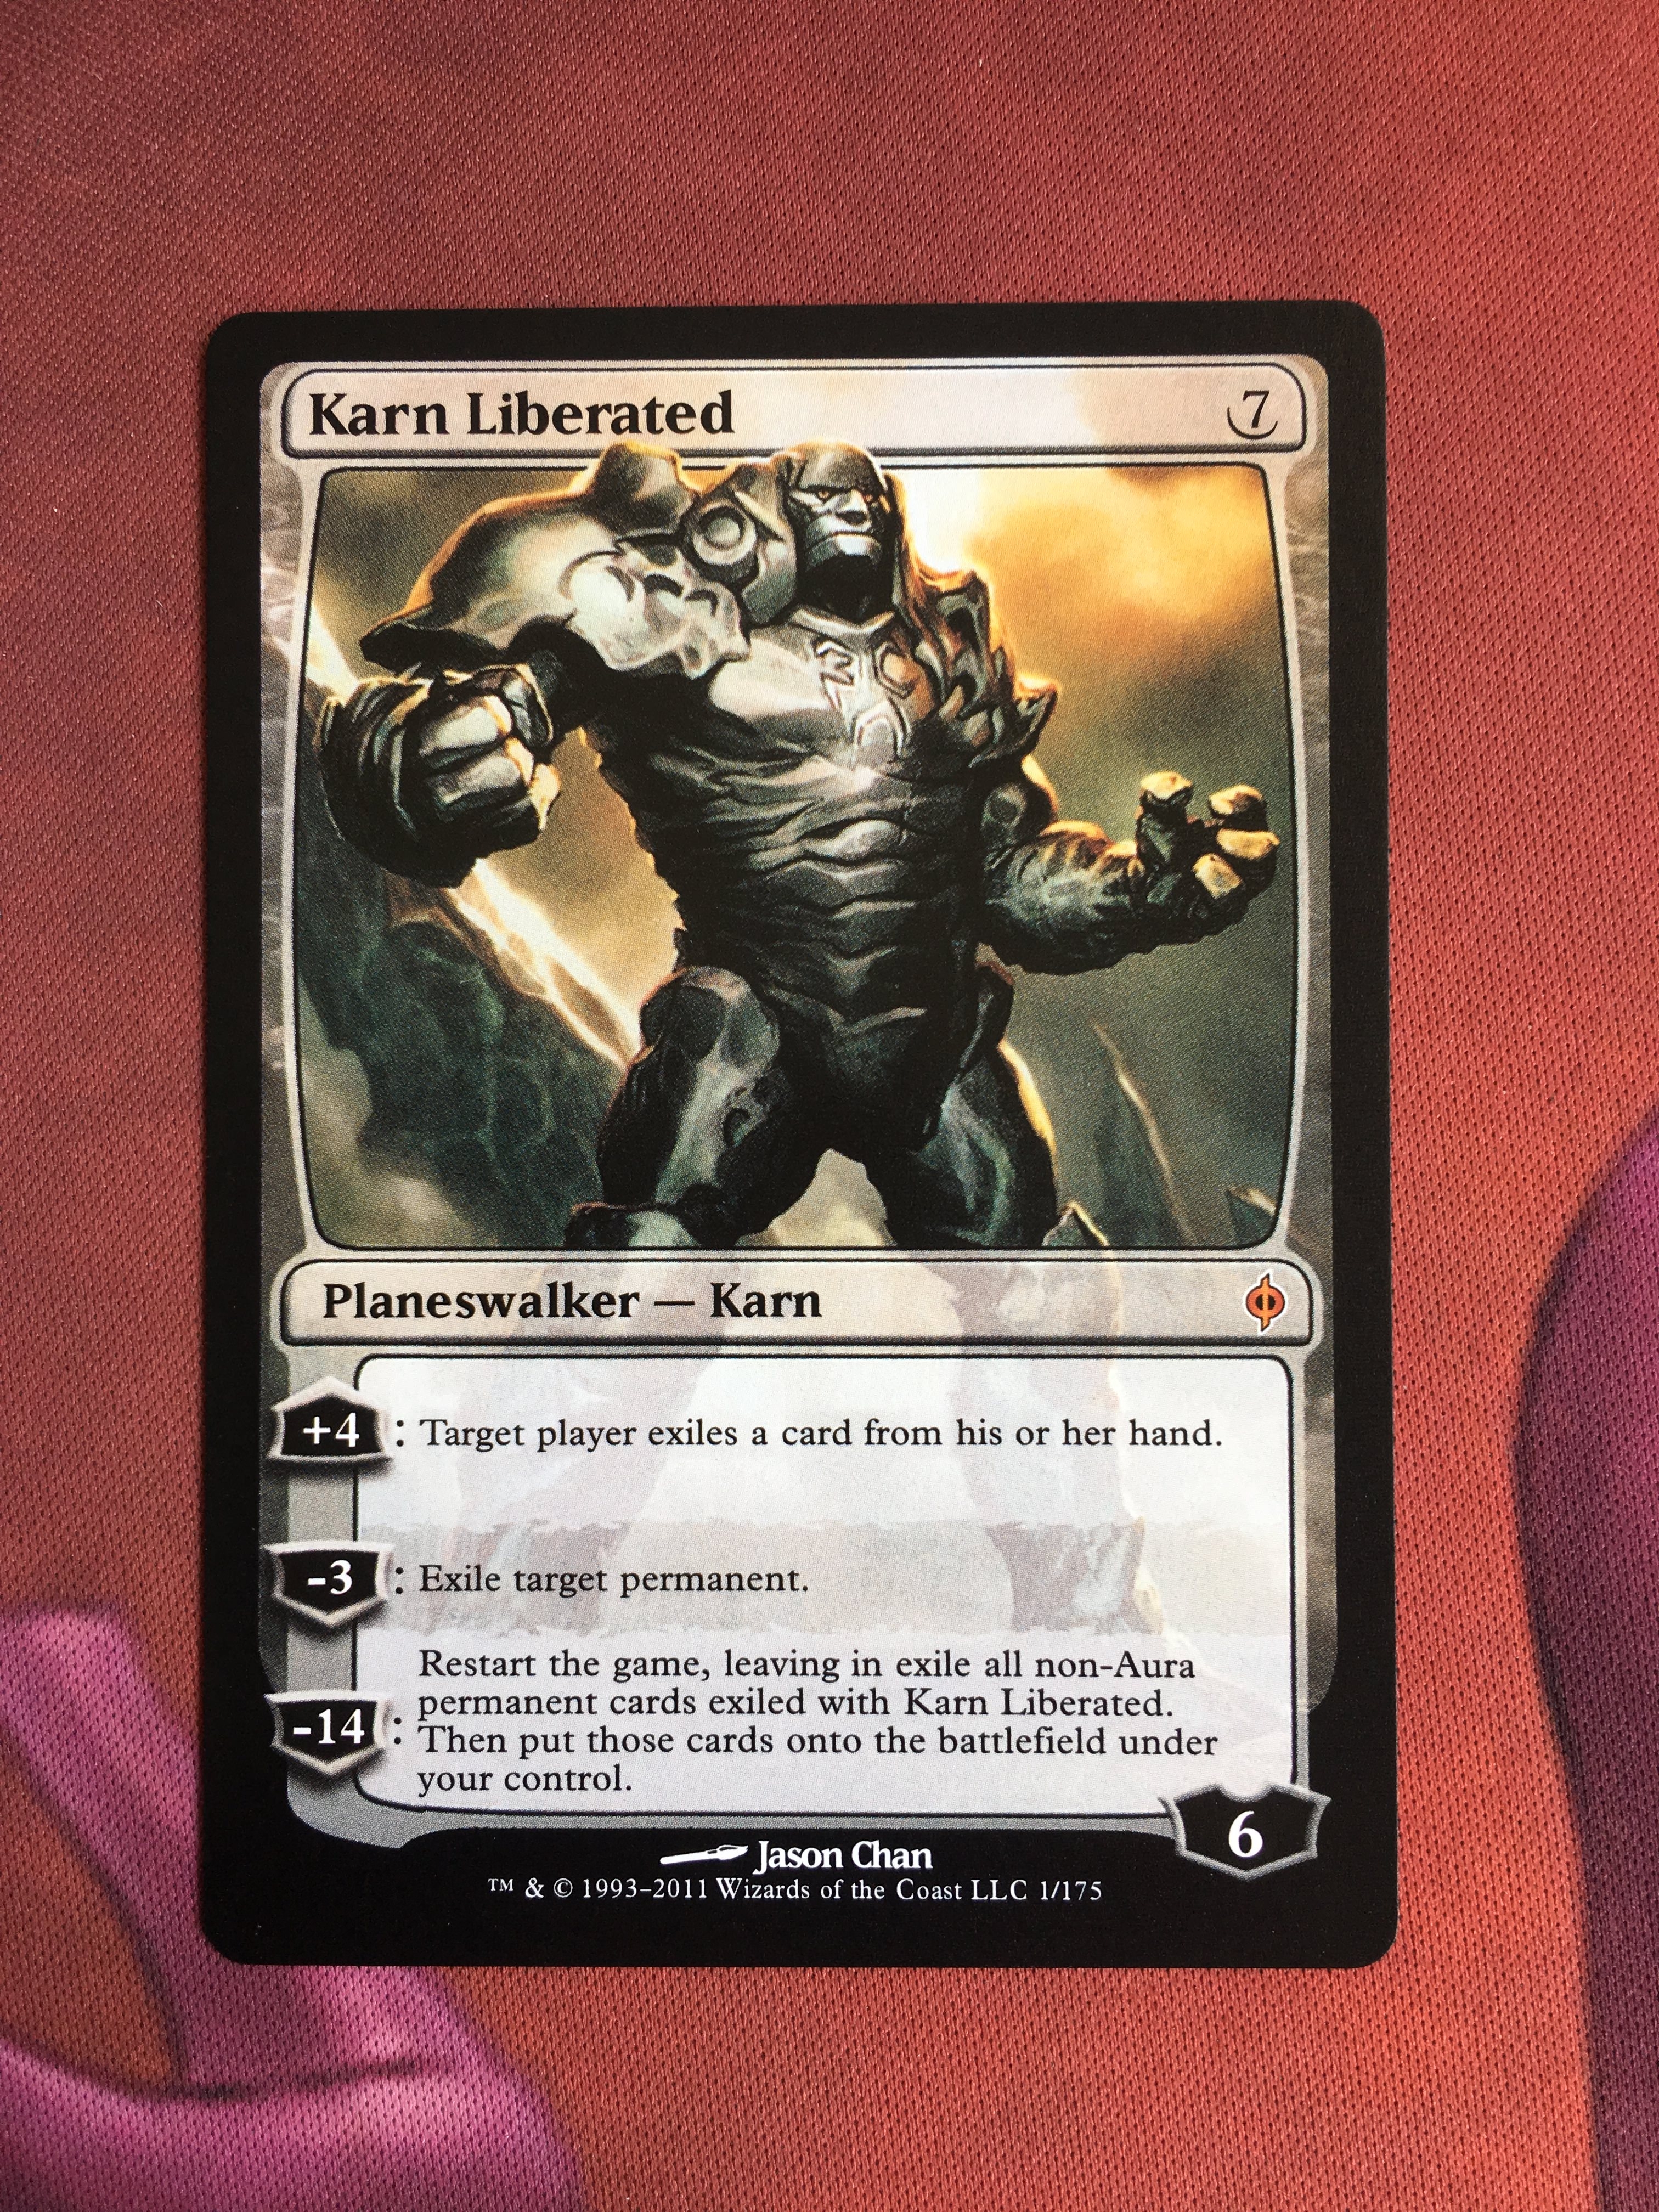 Karn Liberated New Phyrexia Magician ProxyKing 8.0 VIP The Proxy Cards To Gathering Every Single Mg Card.